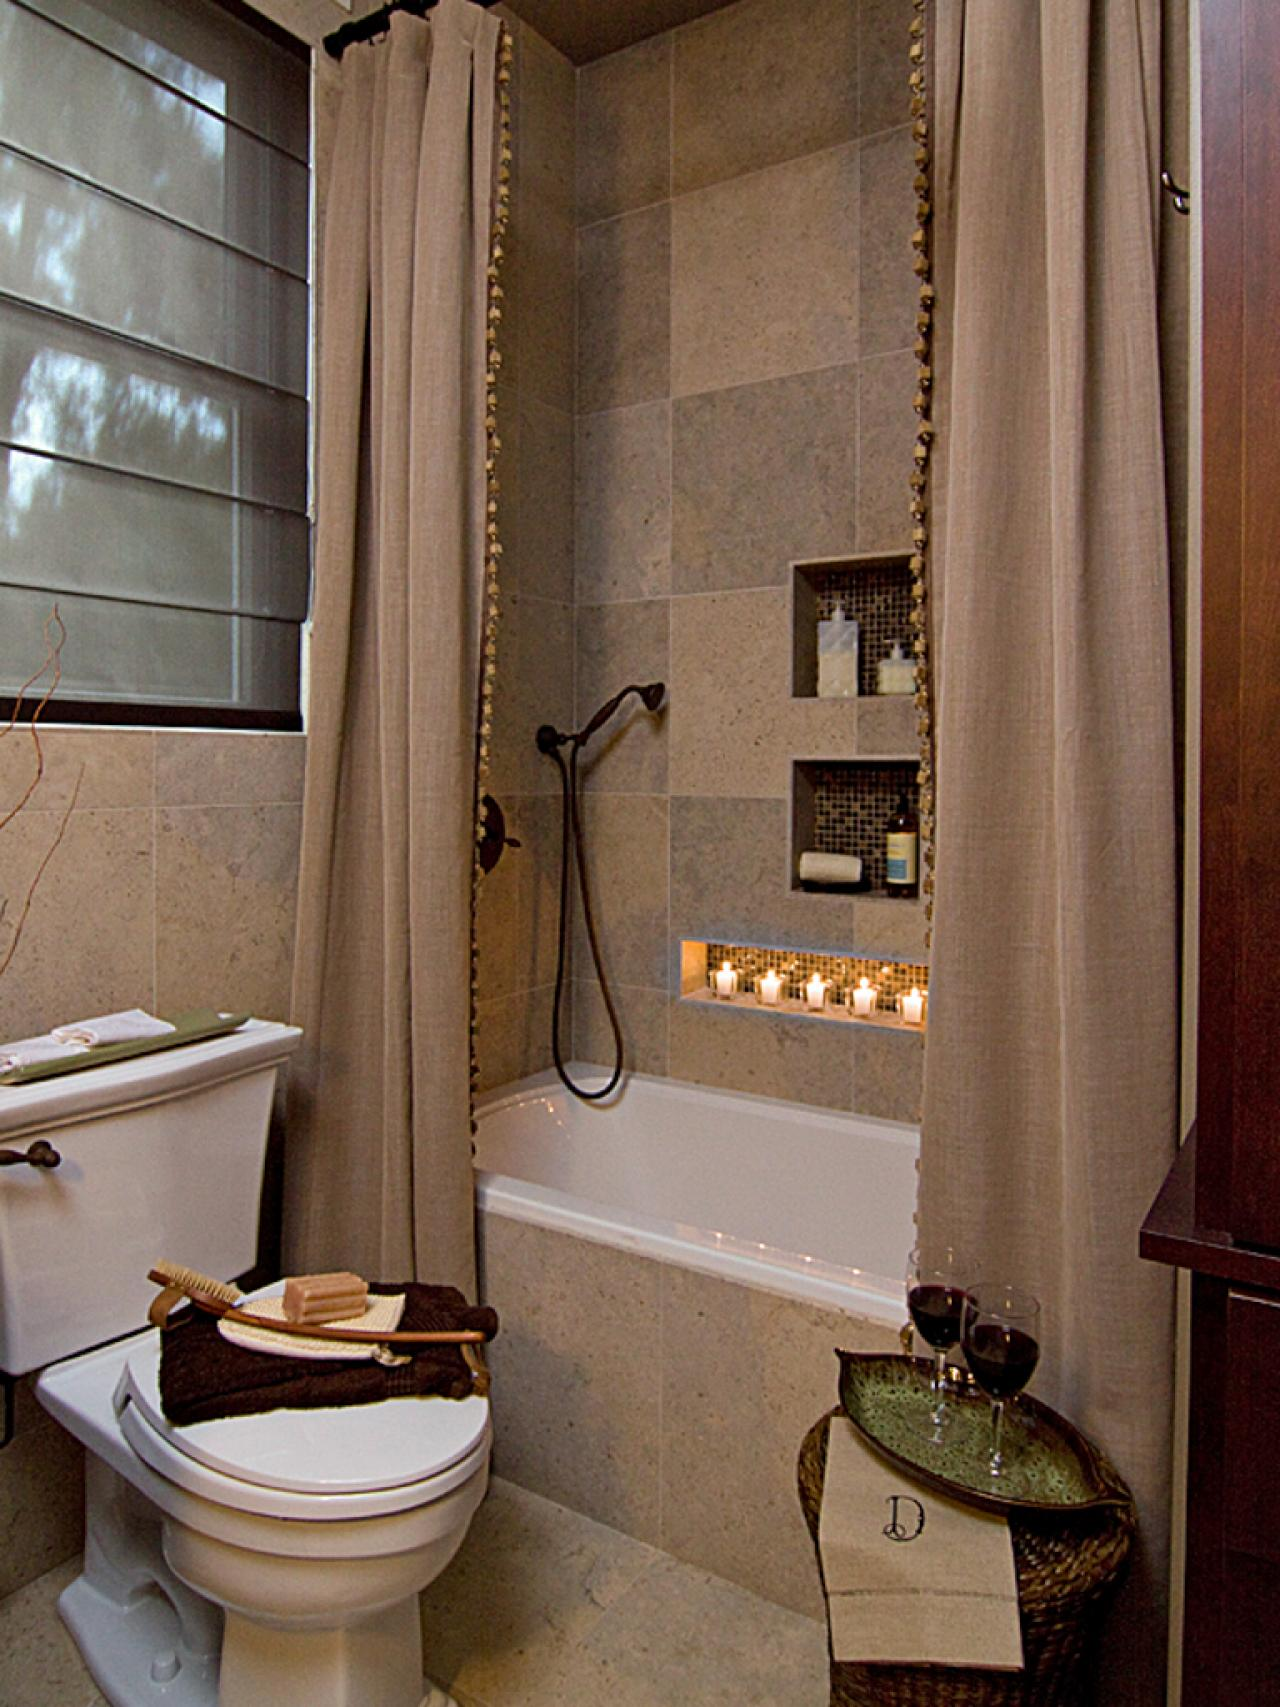 Modern bathroom design ideas pictures tips from hgtv for Bathroom designs hgtv